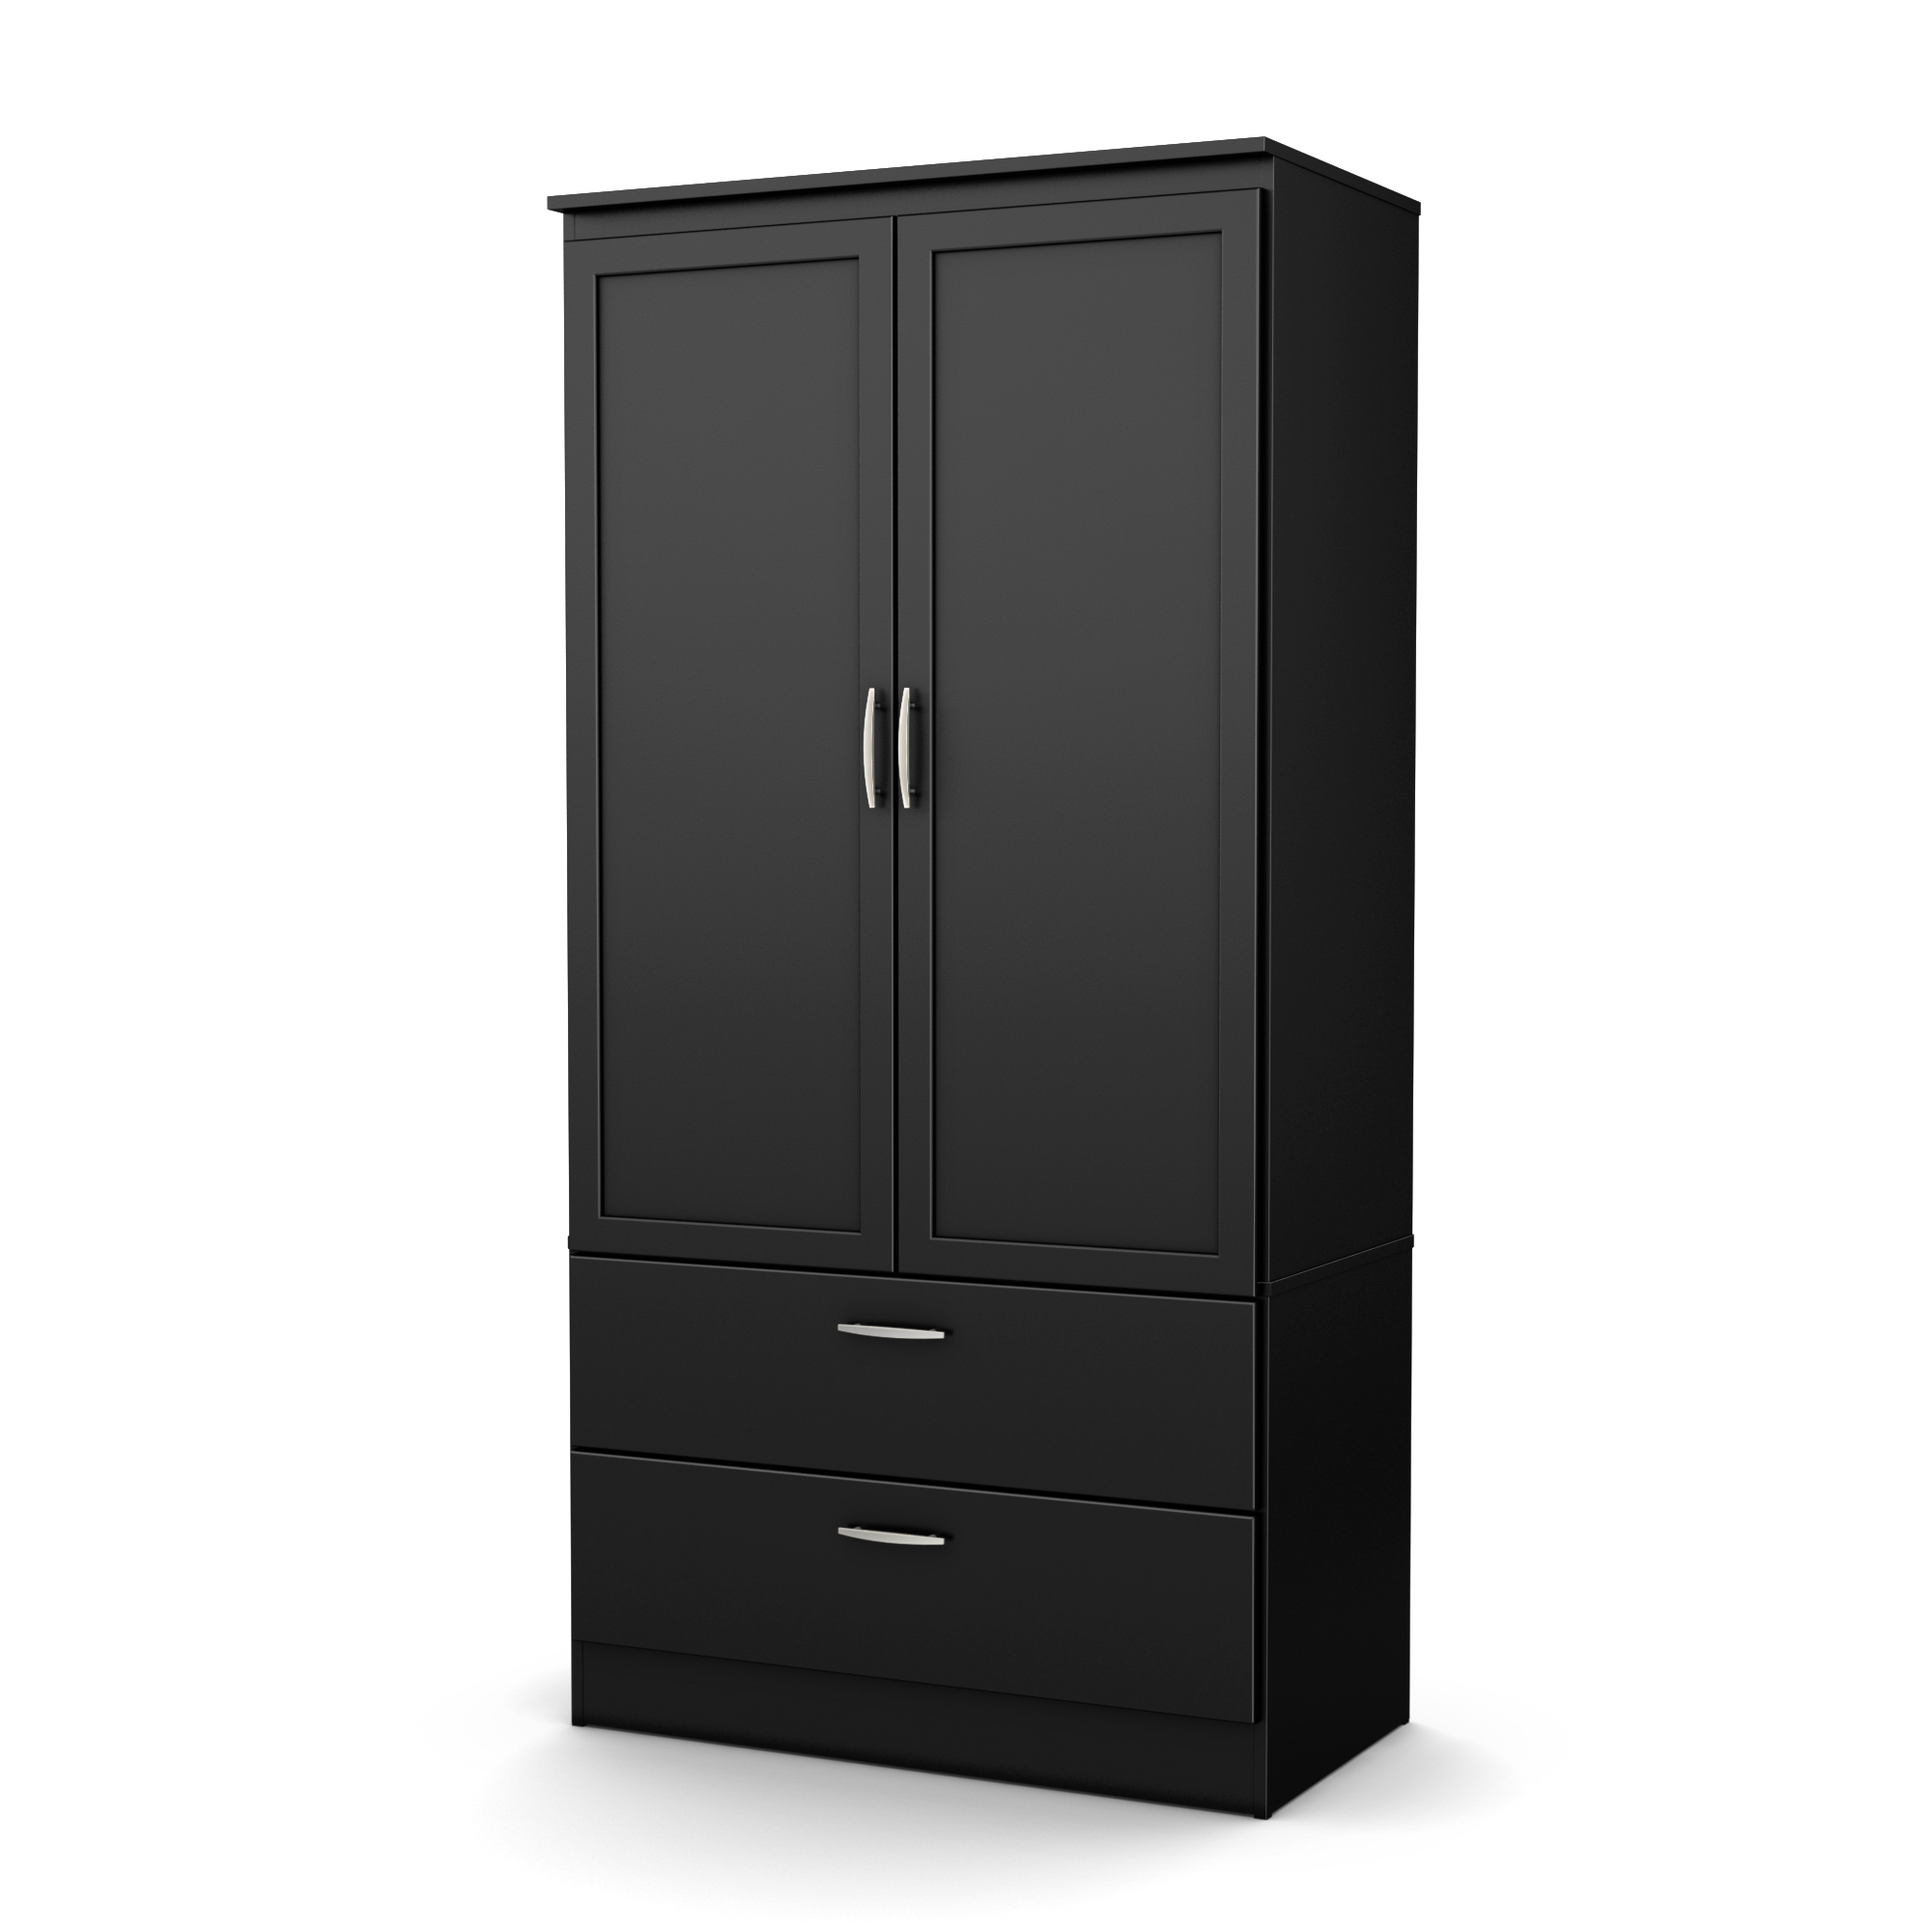 South Shore Acapella Wardrobe Armoire, Multiple Finishes by South Shore